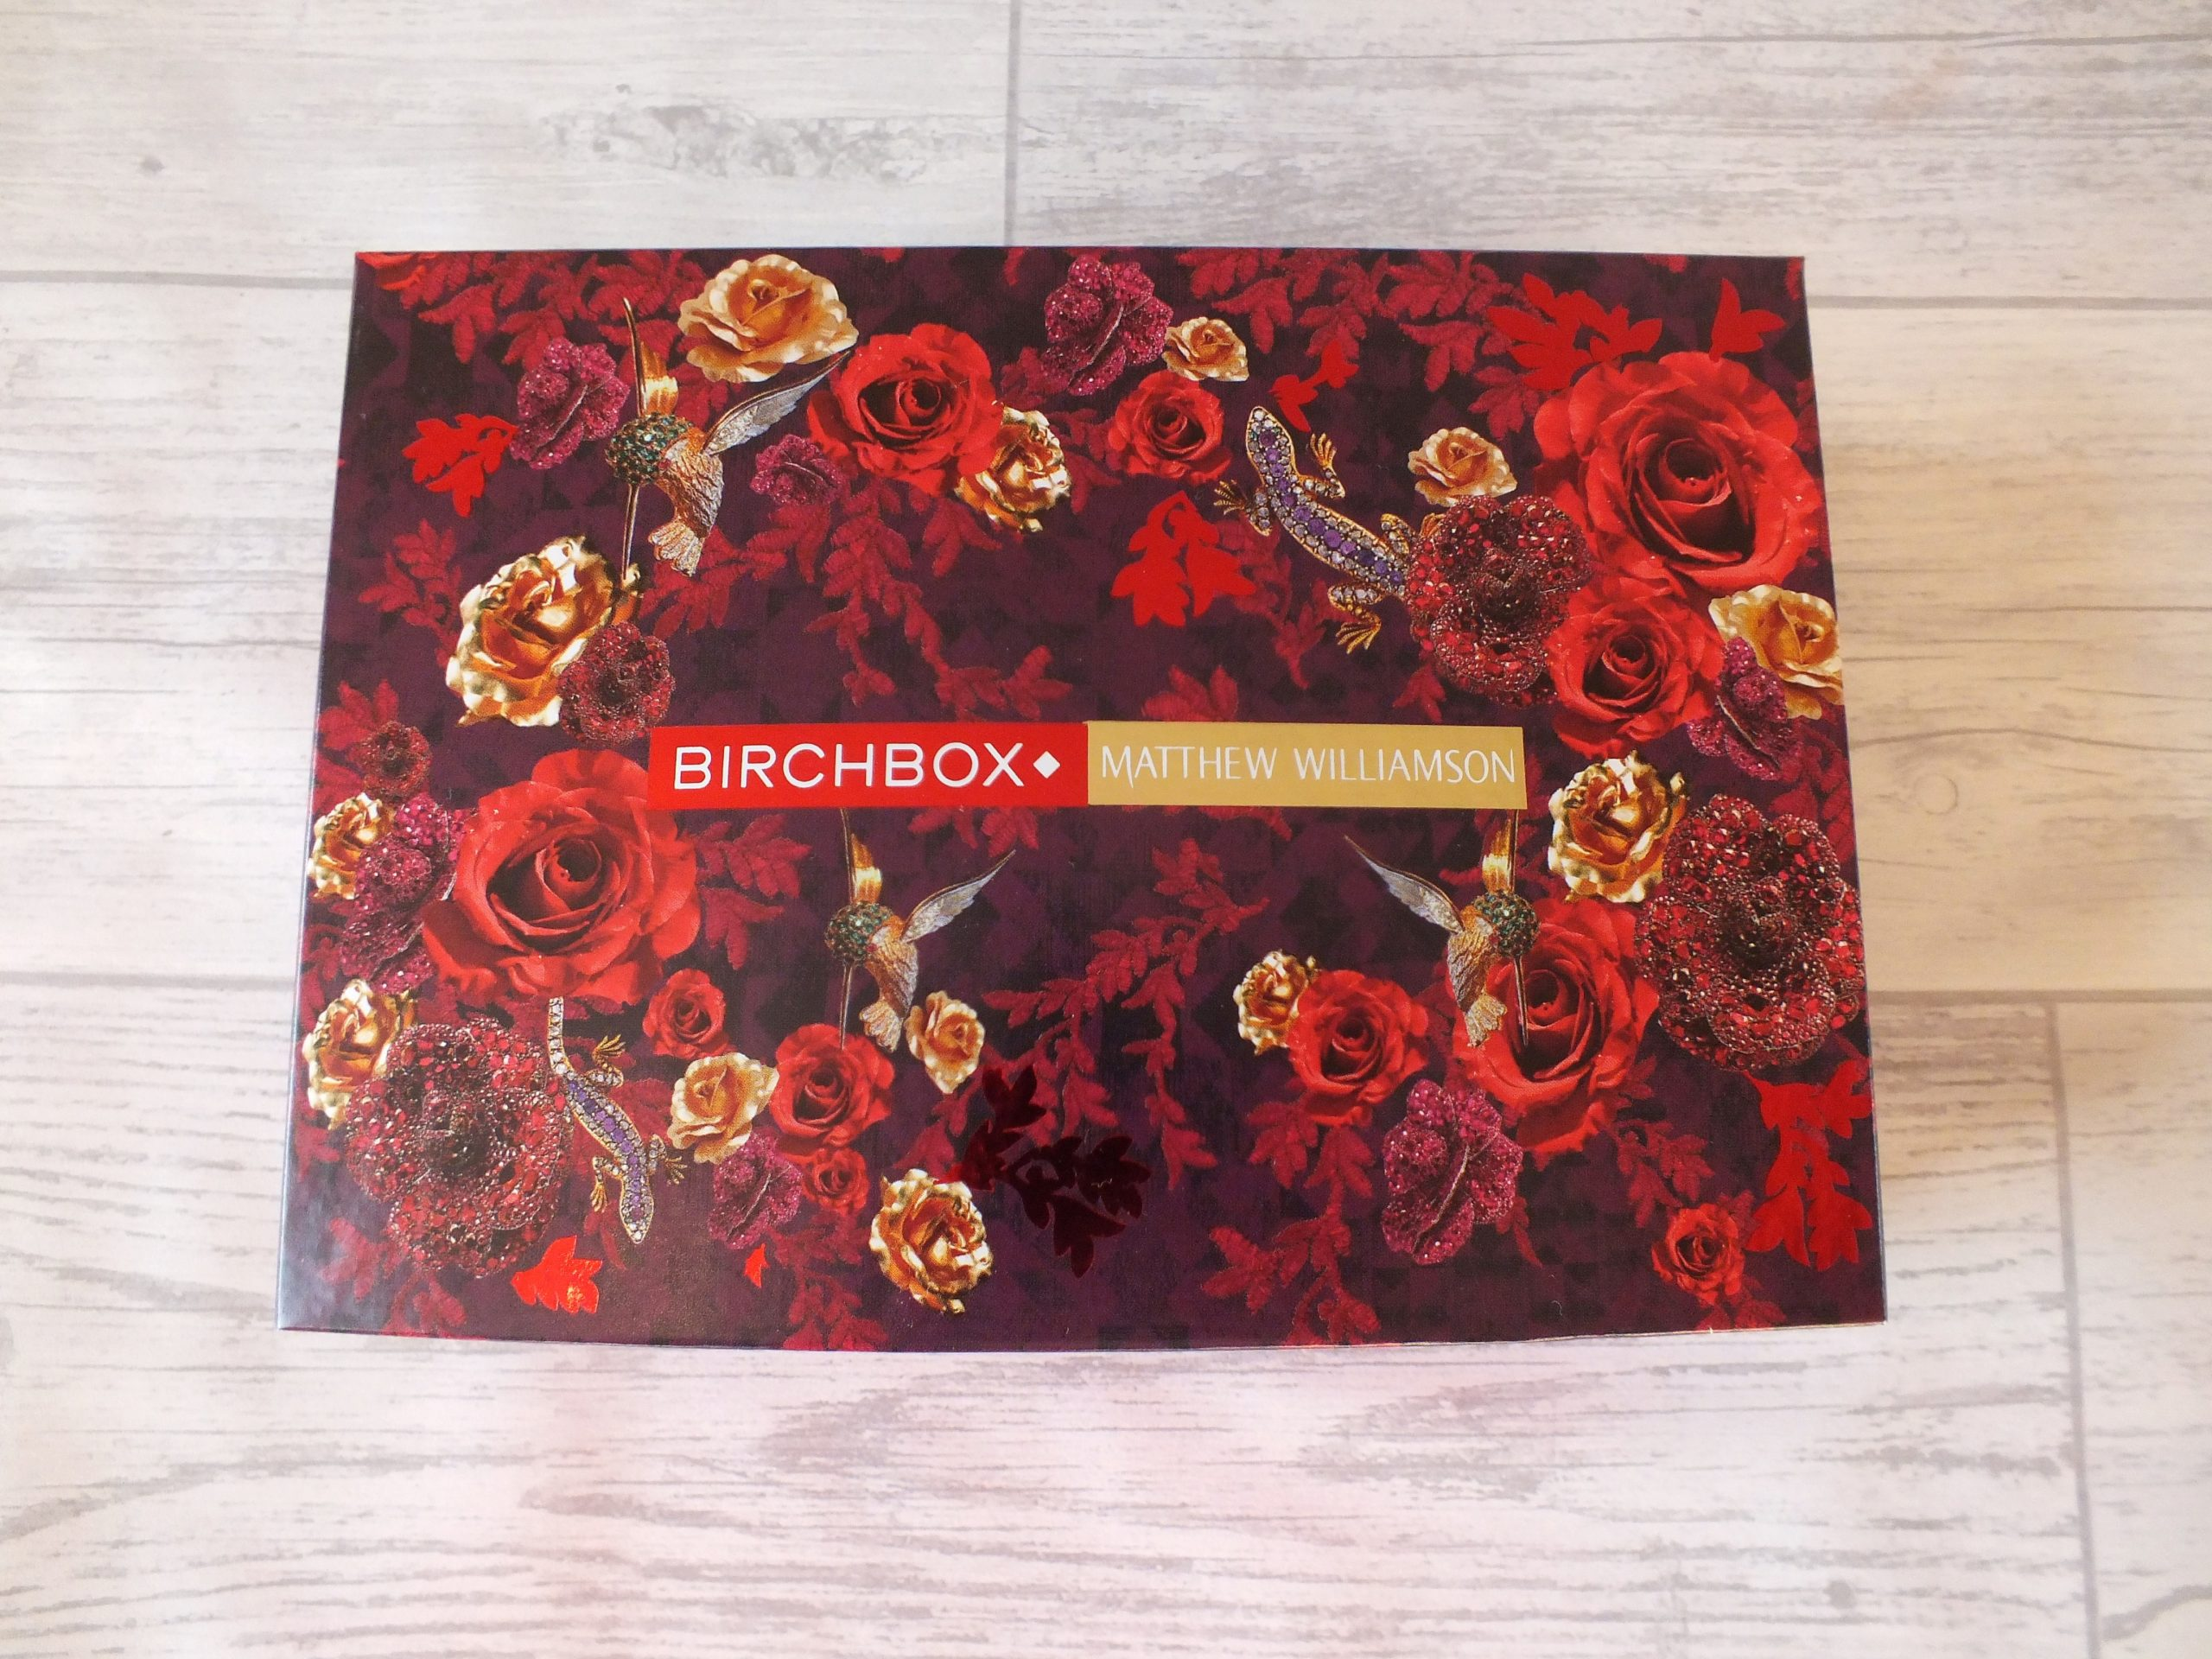 Birchbox December Rewview Matthew Williamson Collaboration Box Image